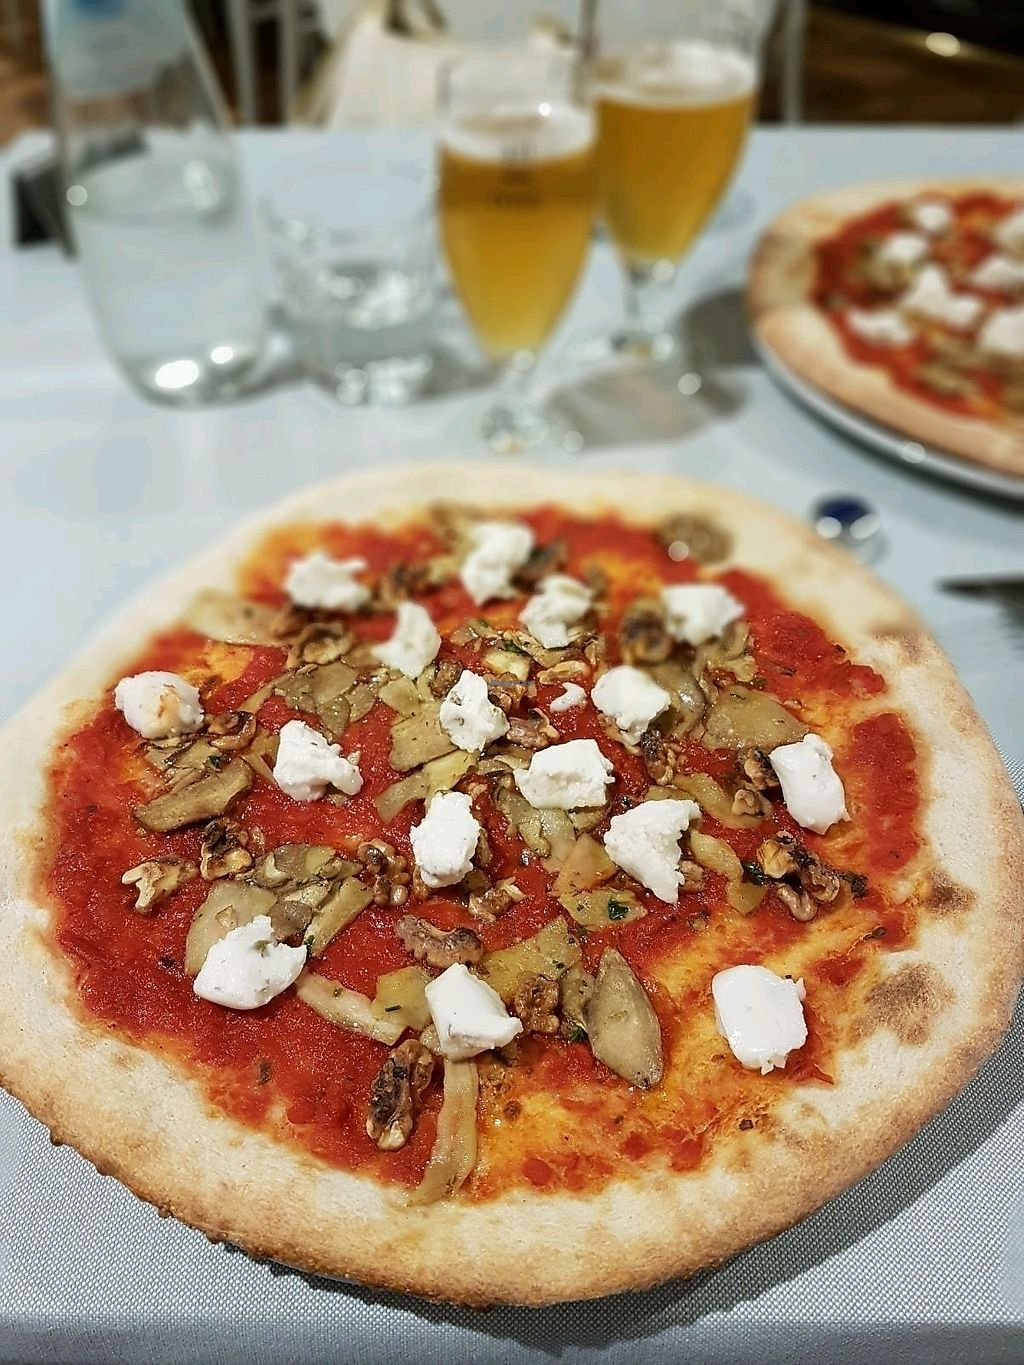 """Photo of Calico Ristorante Pizzeria  by <a href=""""/members/profile/MarinaZago"""">MarinaZago</a> <br/>Pizza with porcini mushrooms, nuts and """"strachicco"""" (rice cheese)  <br/> September 26, 2017  - <a href='/contact/abuse/image/100919/308816'>Report</a>"""